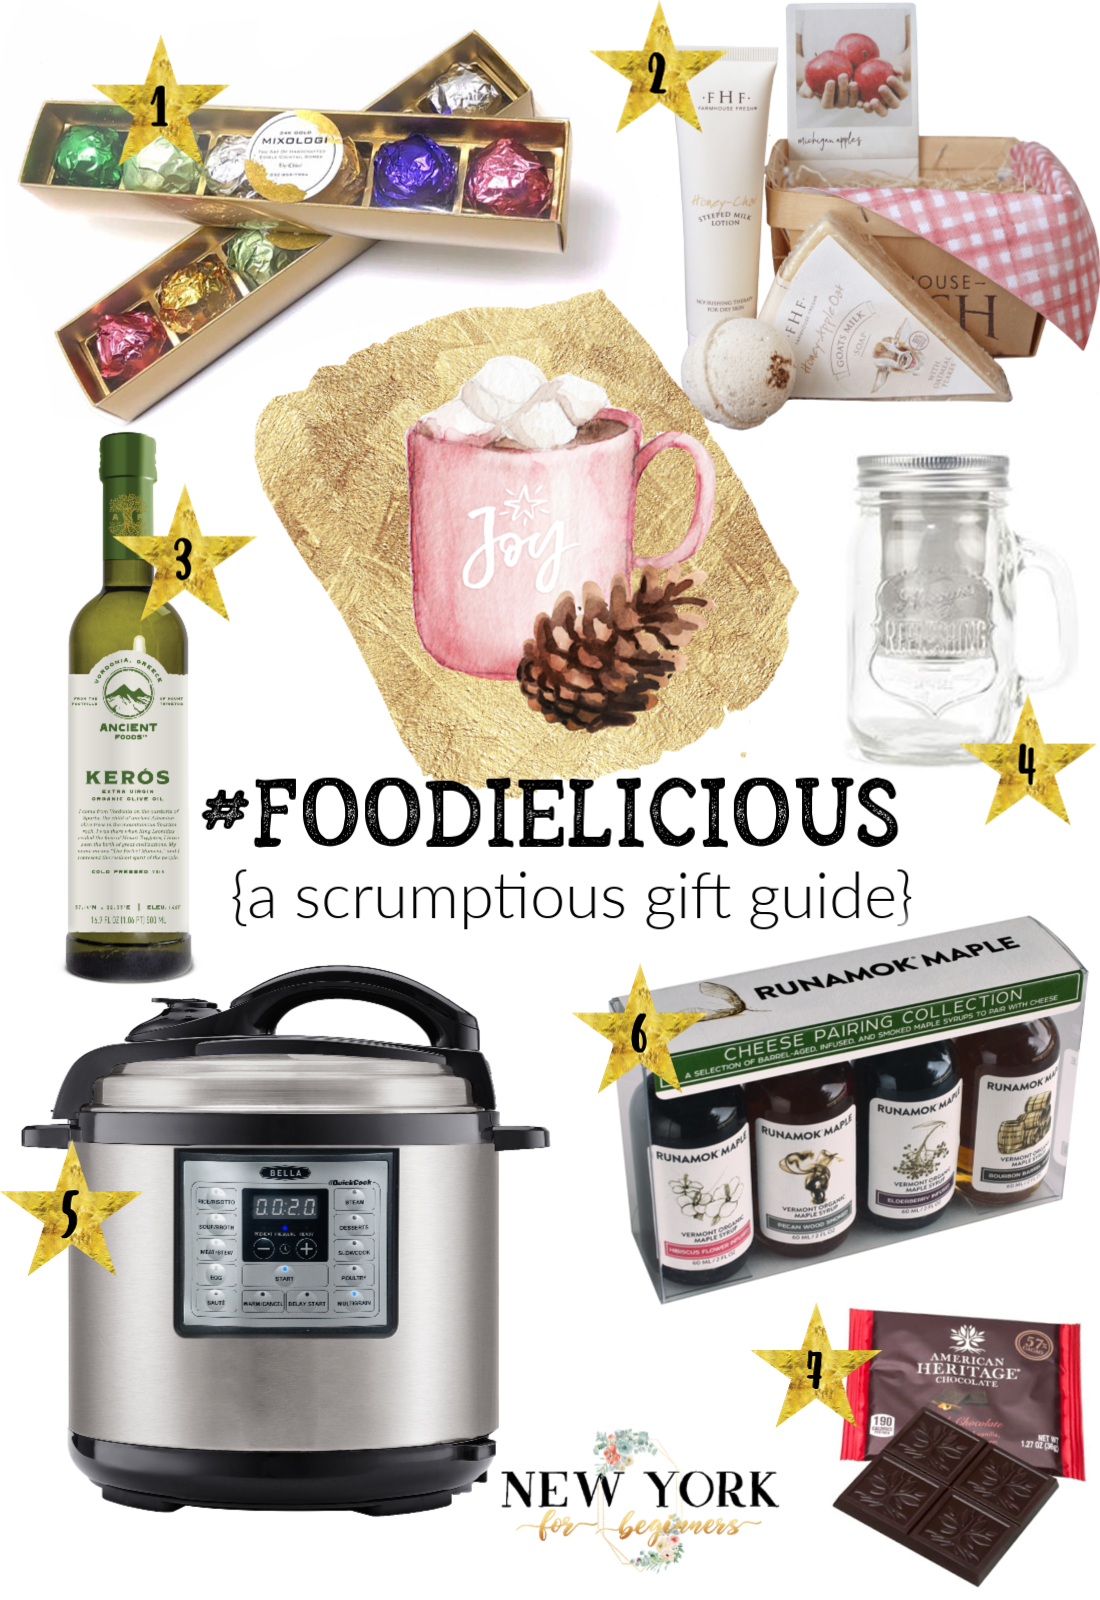 Foodielicious, holiday gift ideas for foodies